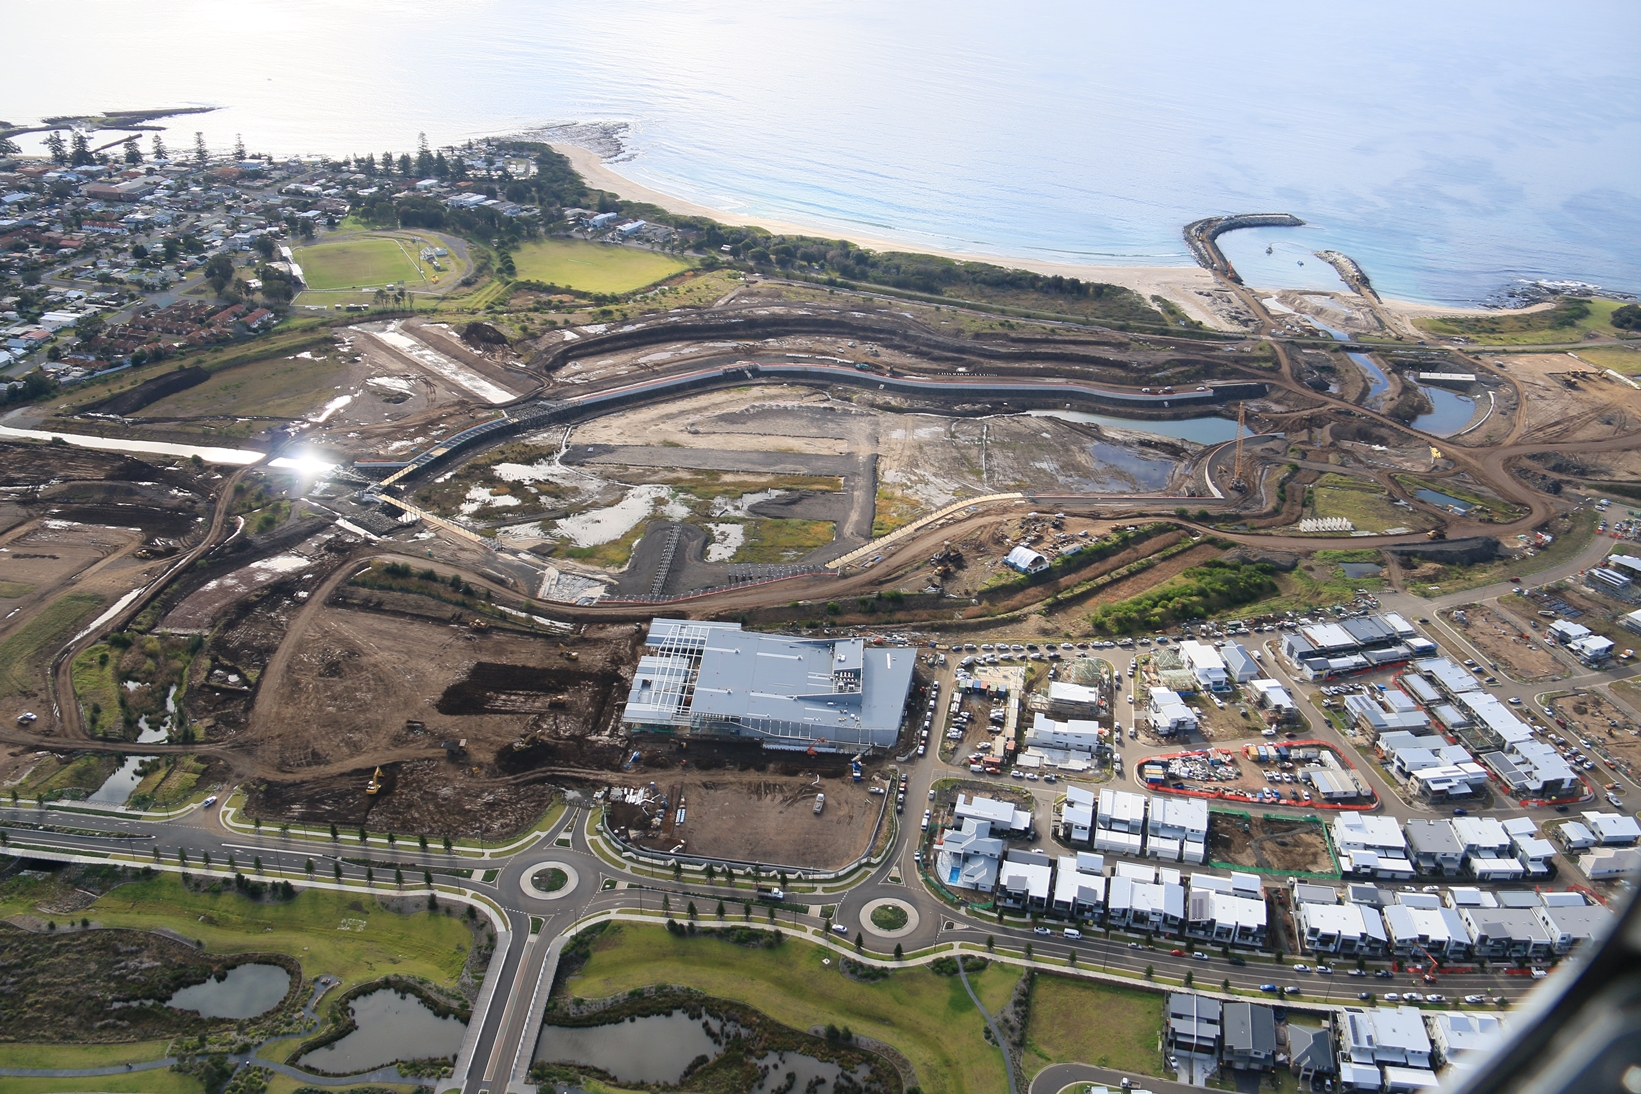 The Waterfront Construction Images Aerial June 2018